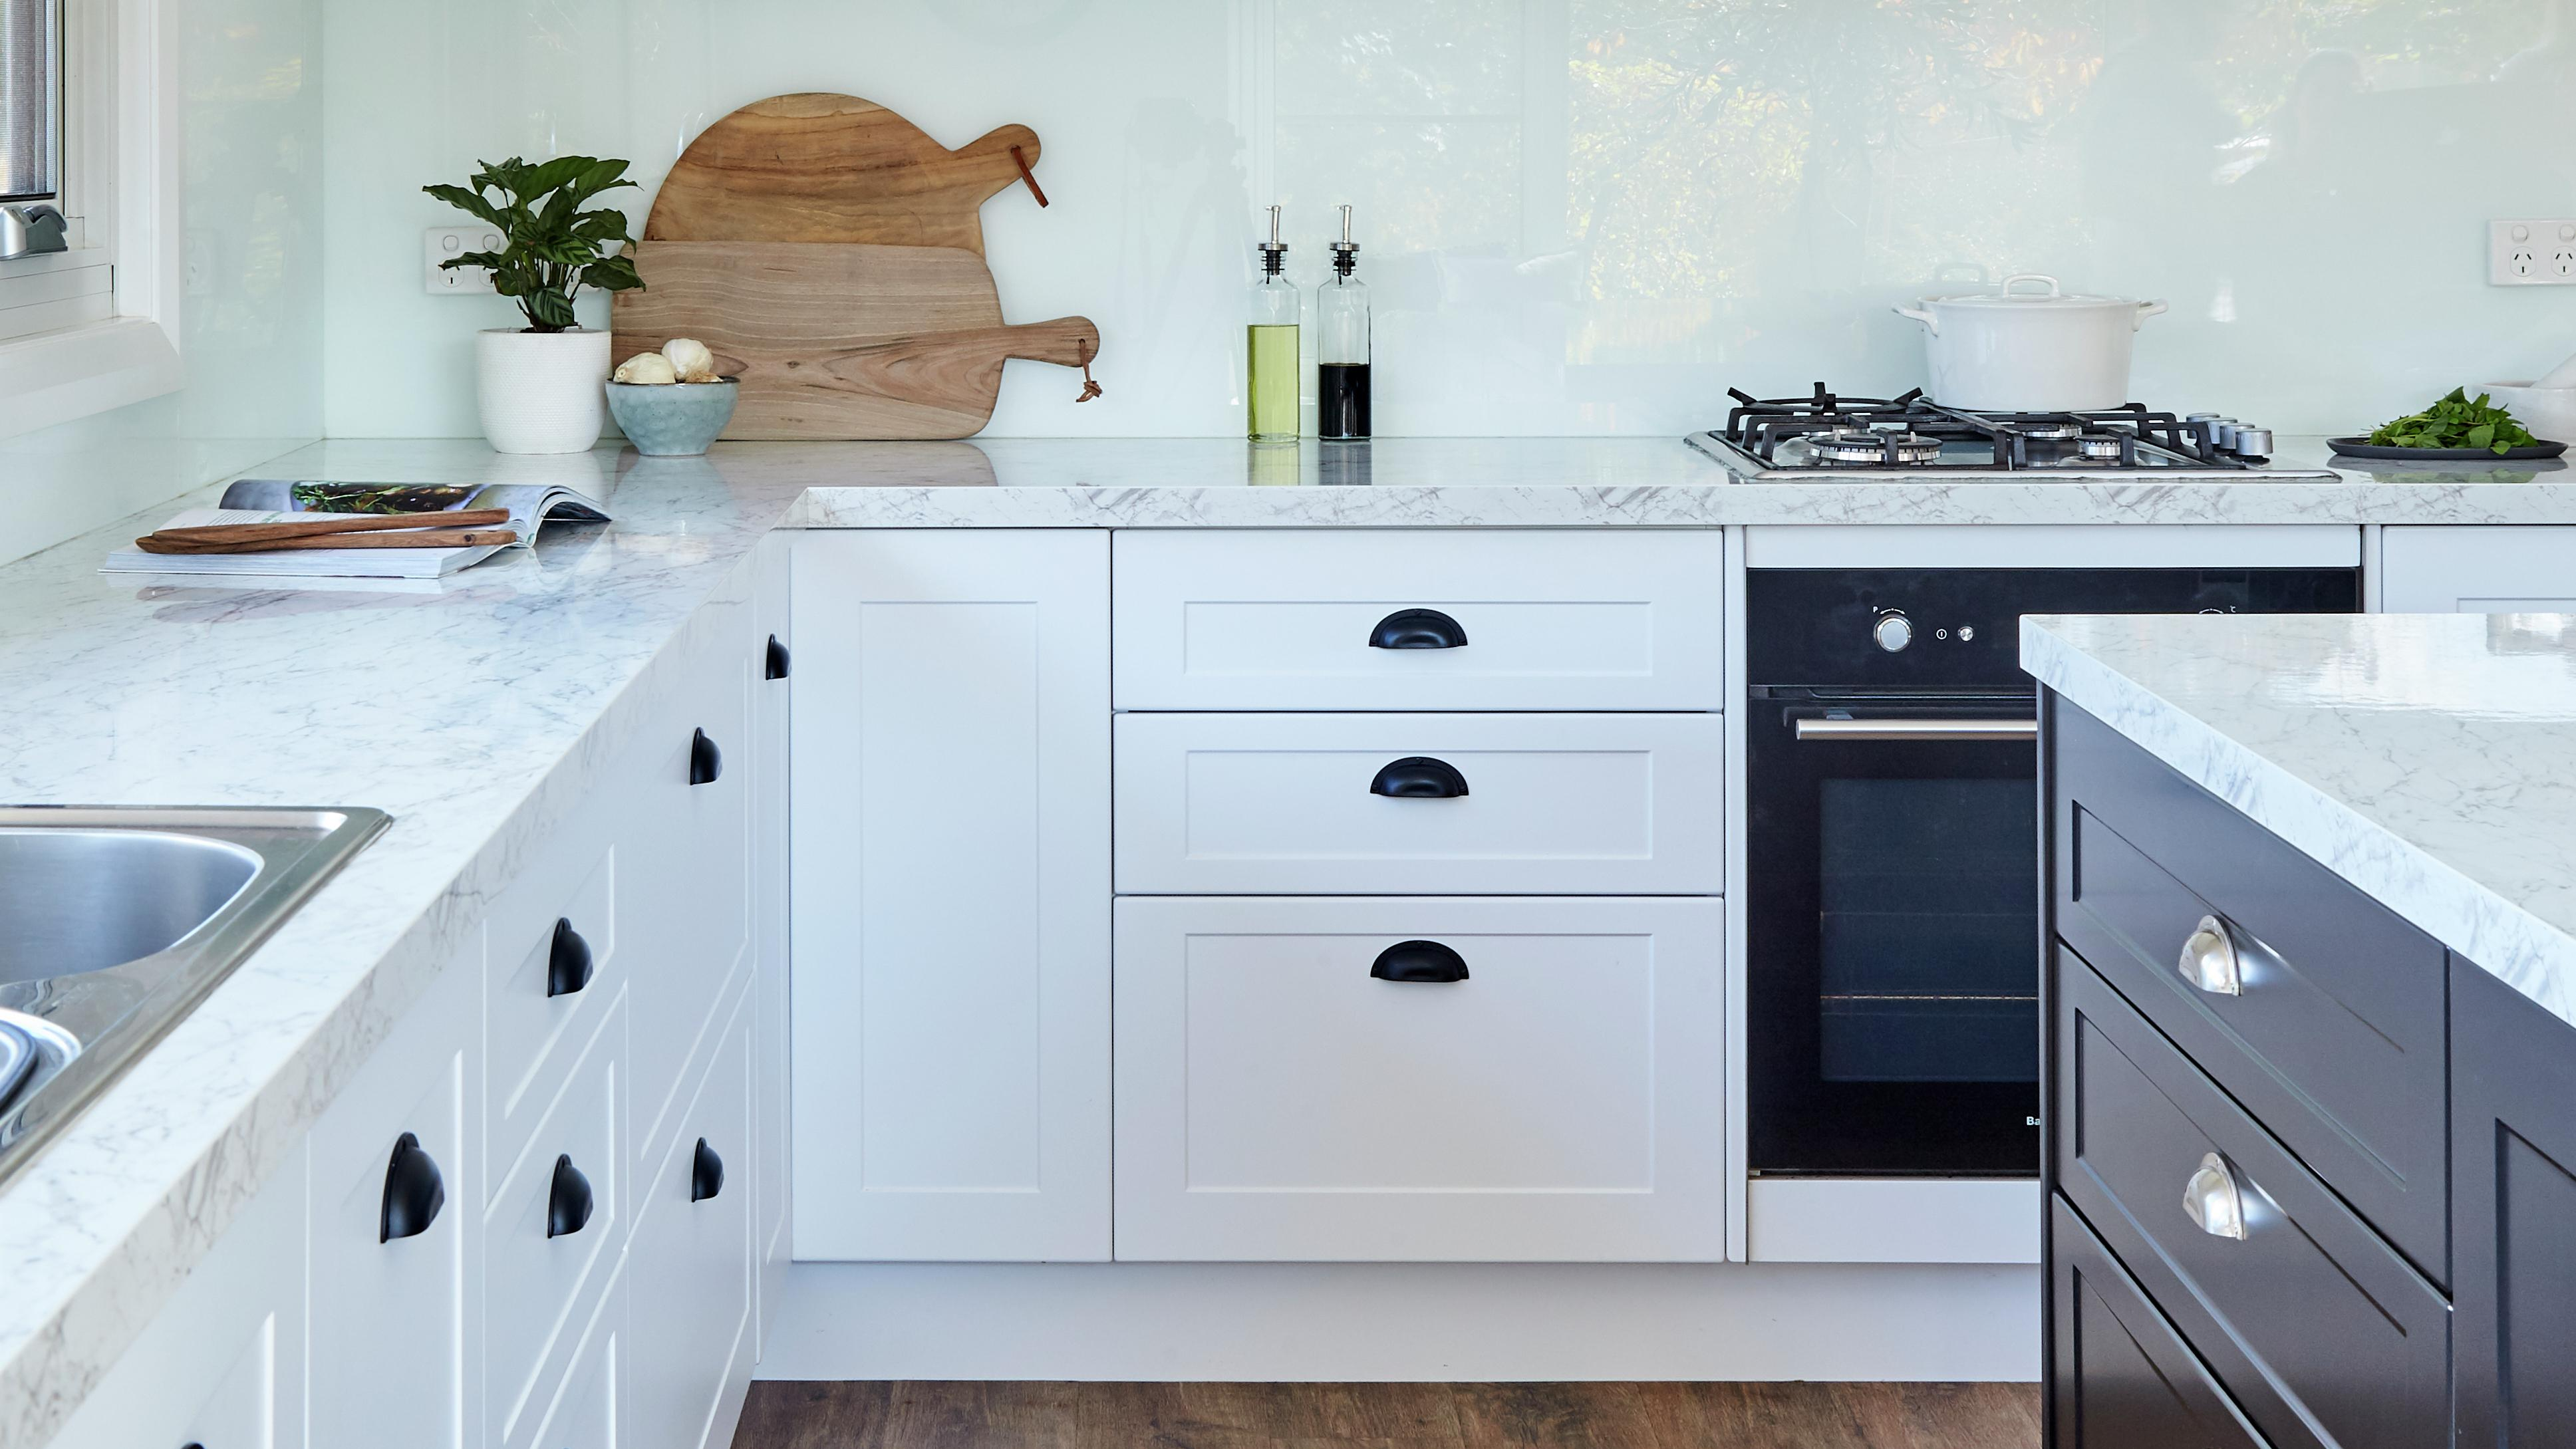 Kitchen featuring marble benchtops, white cabinetry with black handles and timber floorboards.